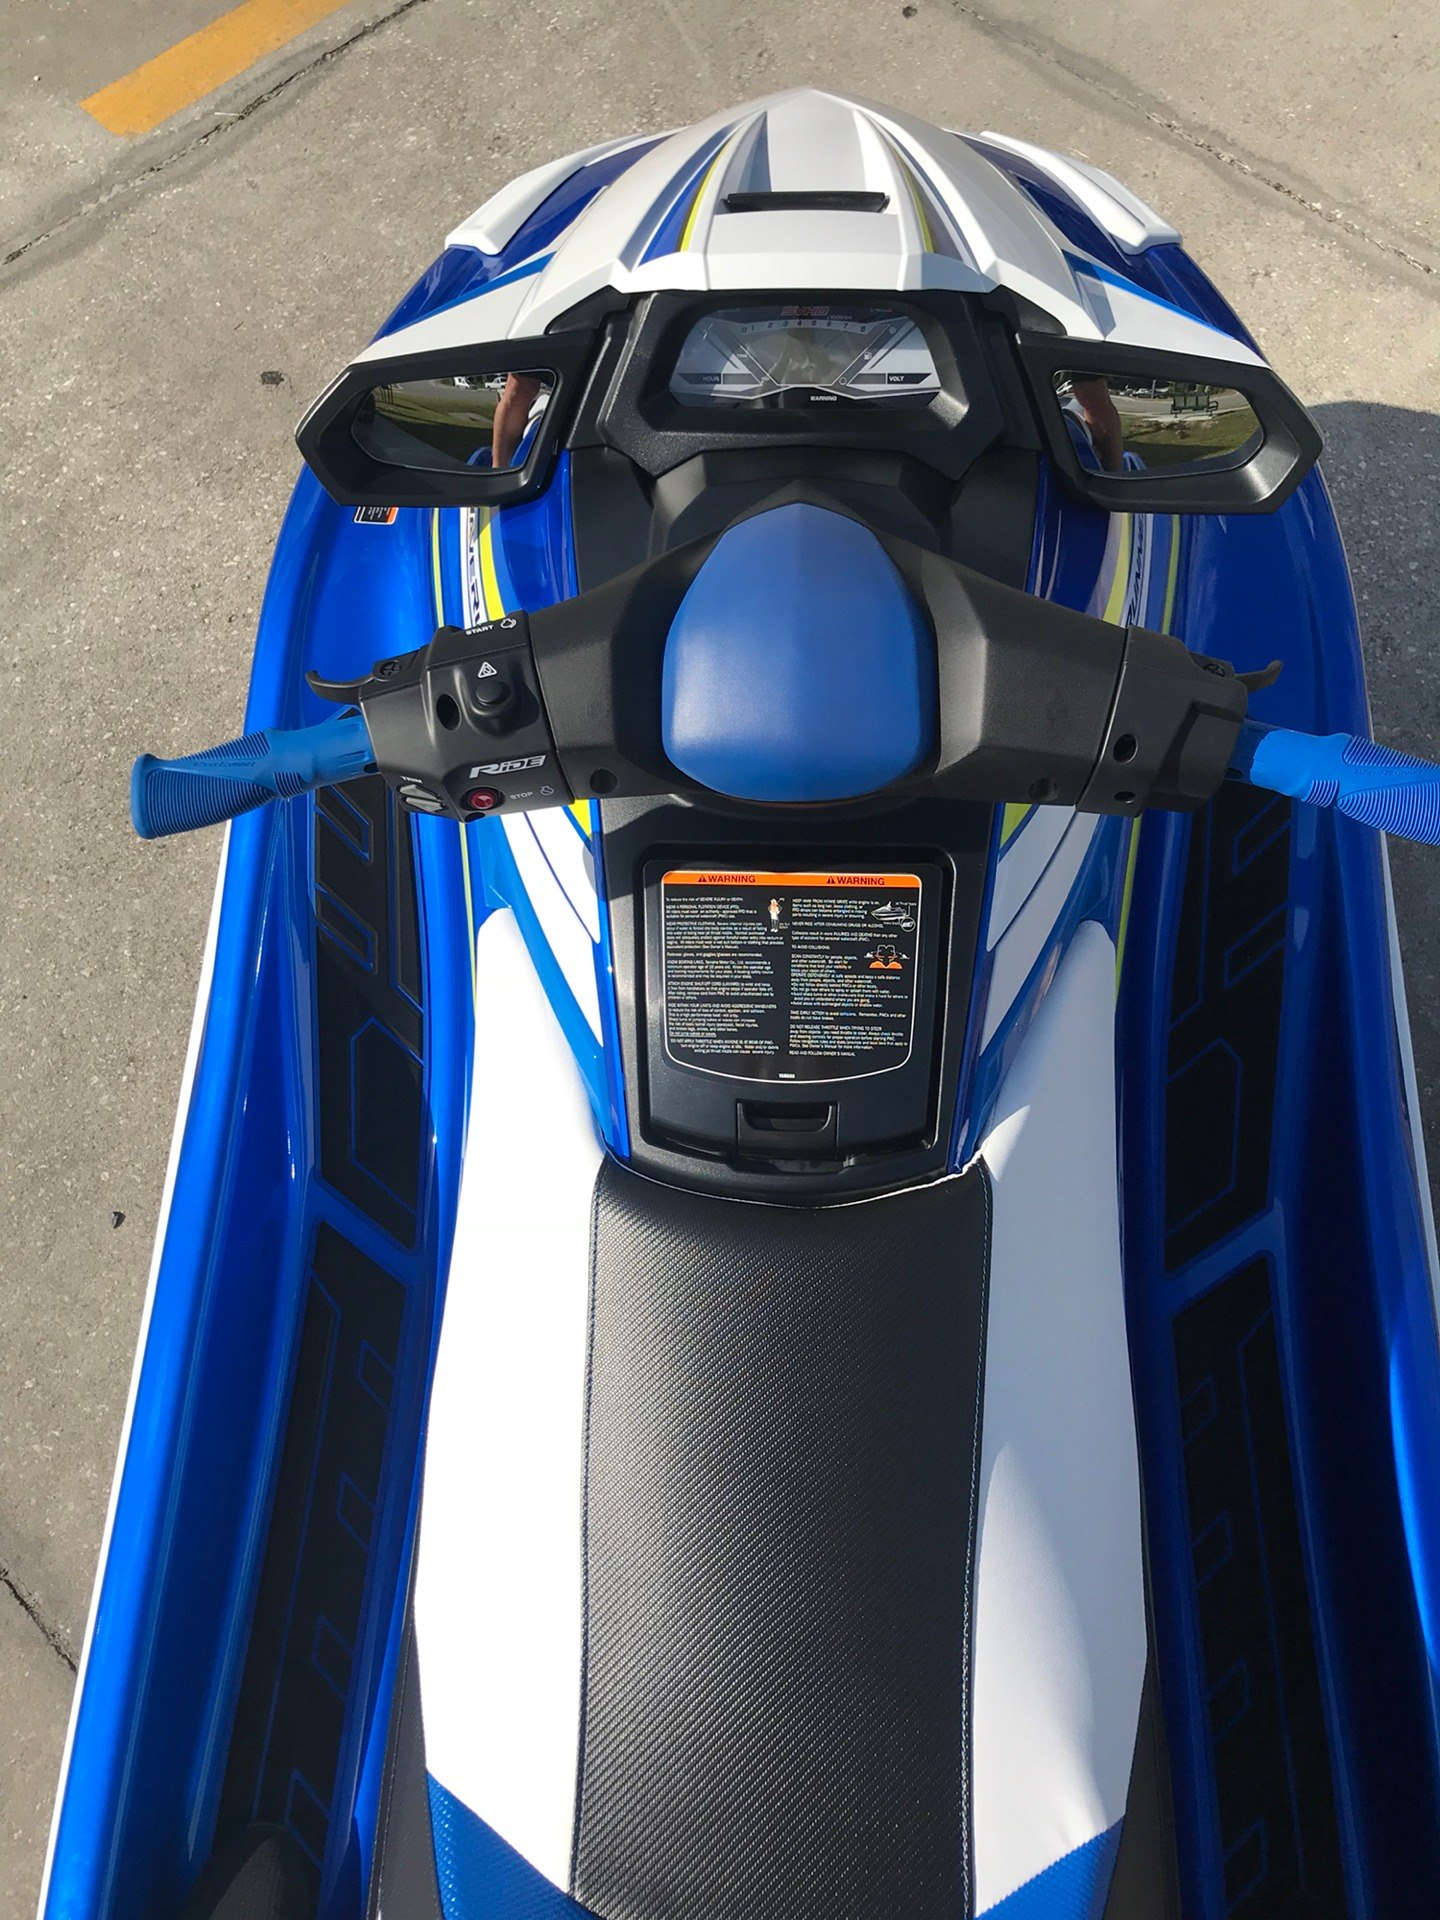 2019 Yamaha GP1800R in Orlando, Florida